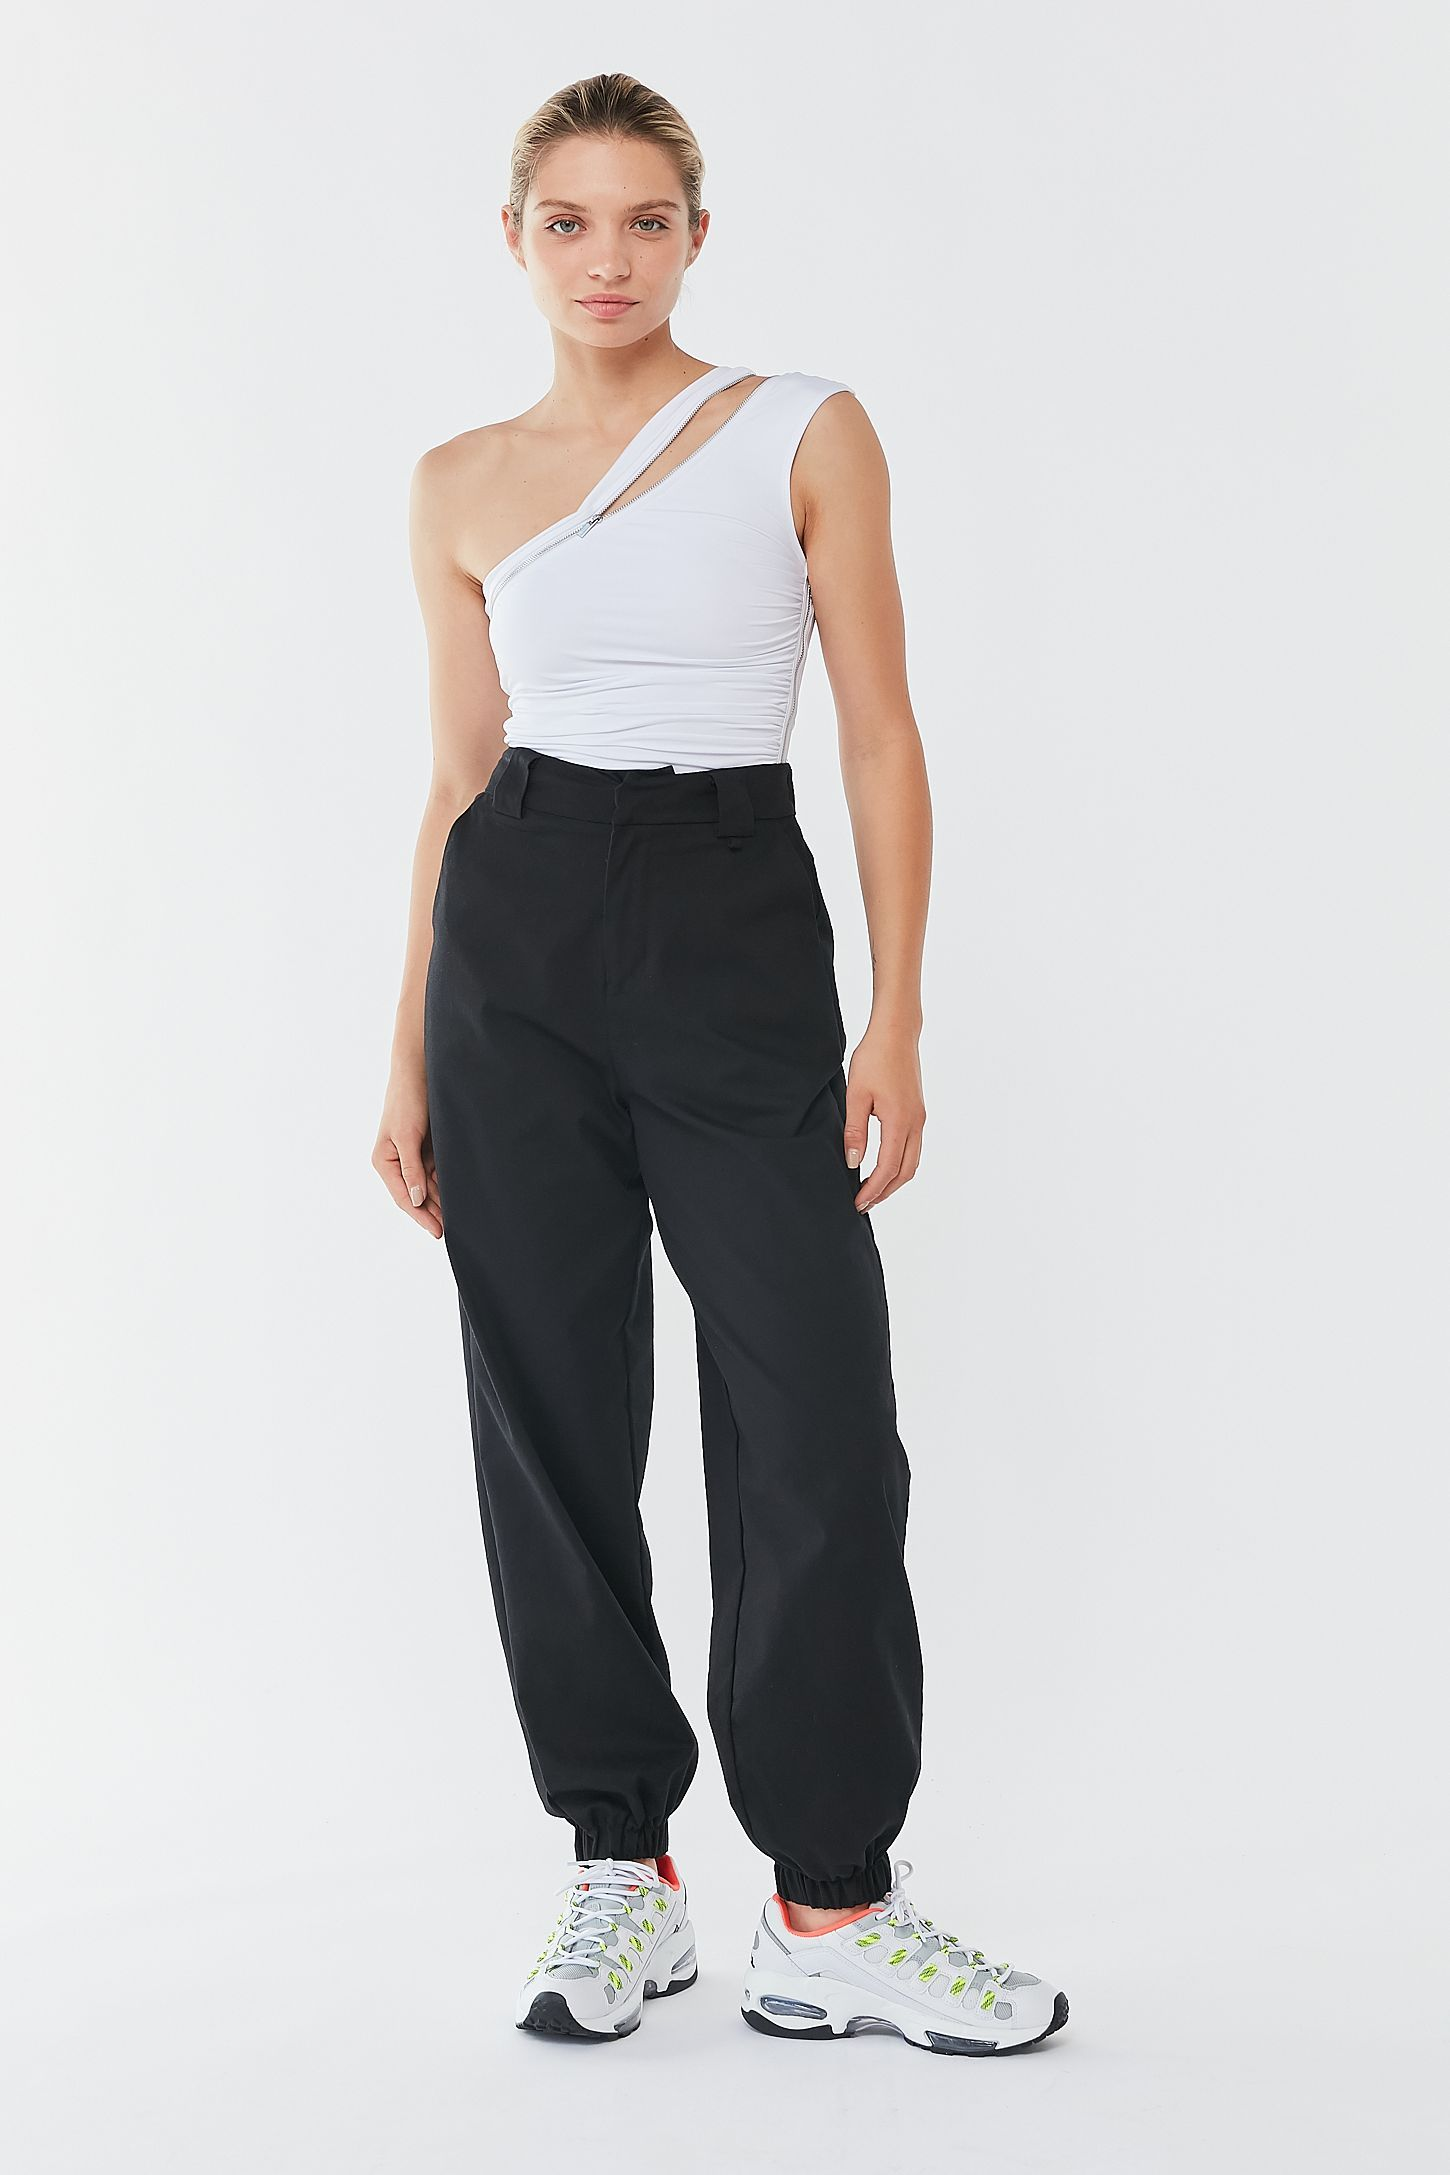 I.AM.GIA Lucienne Zippered OneShoulder Tank Top I.am